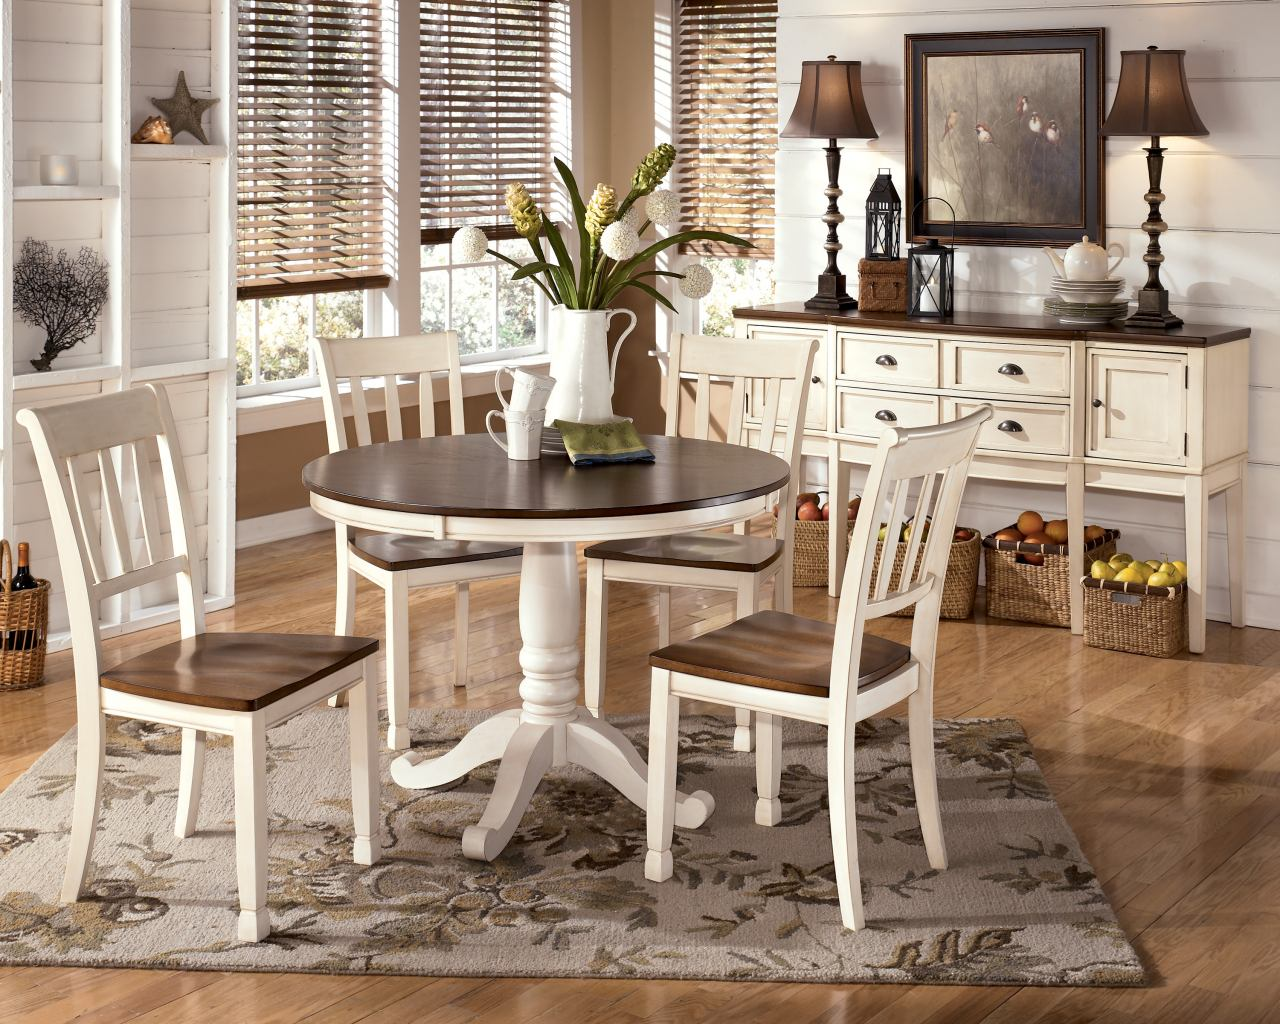 whitesburg 5 piece round dining table set in brown white round kitchen table set Whitesburg 5 Piece Round Dining Table Set in Brown White